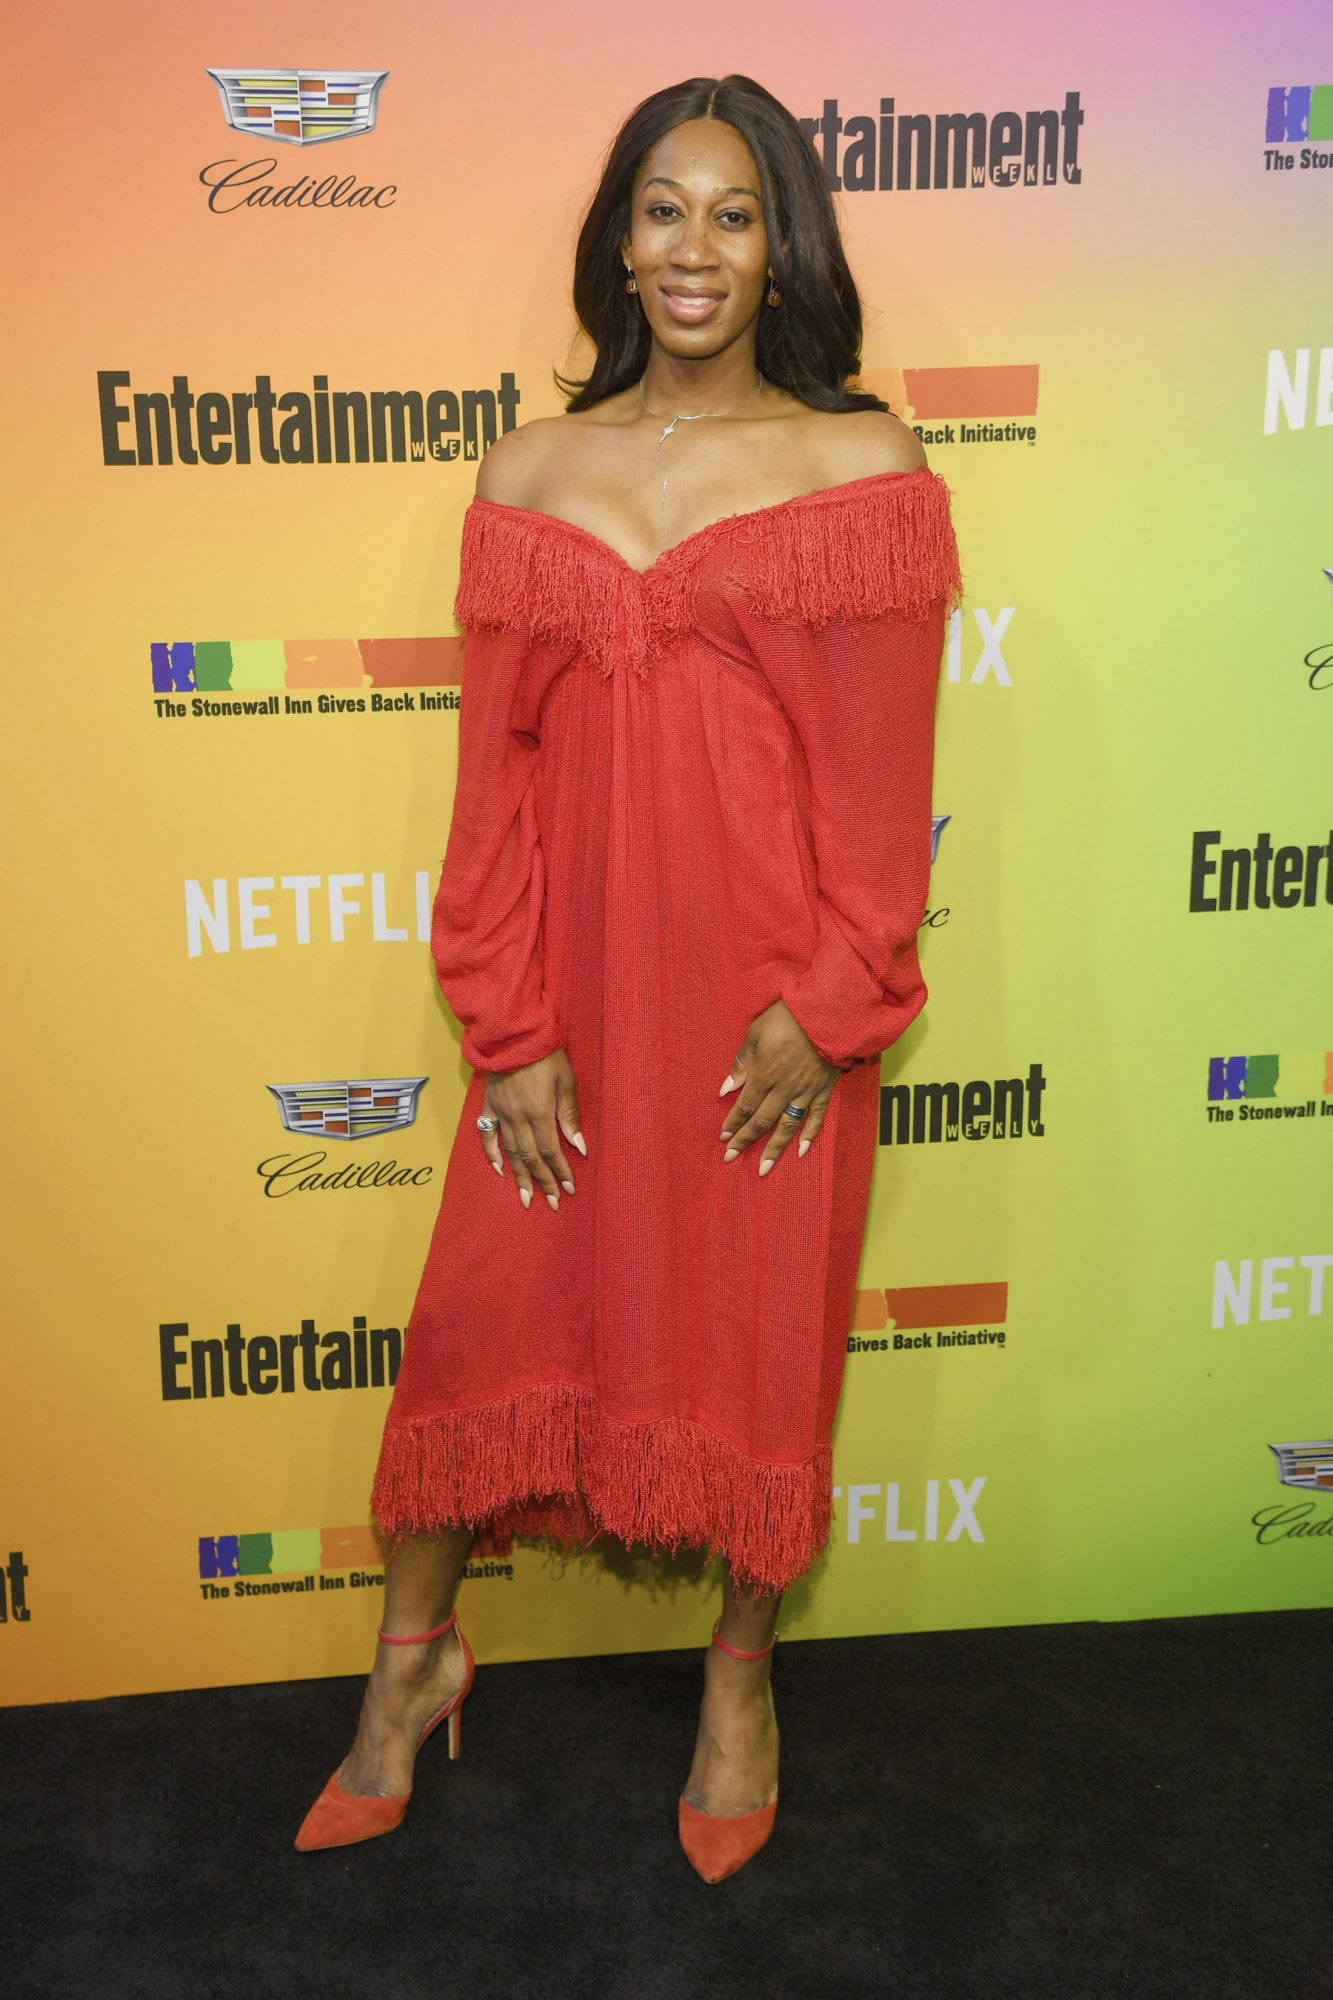 NEW YORK, NEW YORK - JUNE 05: Mila Jam attends as Entertainment Weekly Celebrates Its Annual LGBTQ Issue at the Stonewall Inn on June 05, 2019 in New York City. (Photo by Dimitrios Kambouris/Getty Images for Entertainment Weekly)